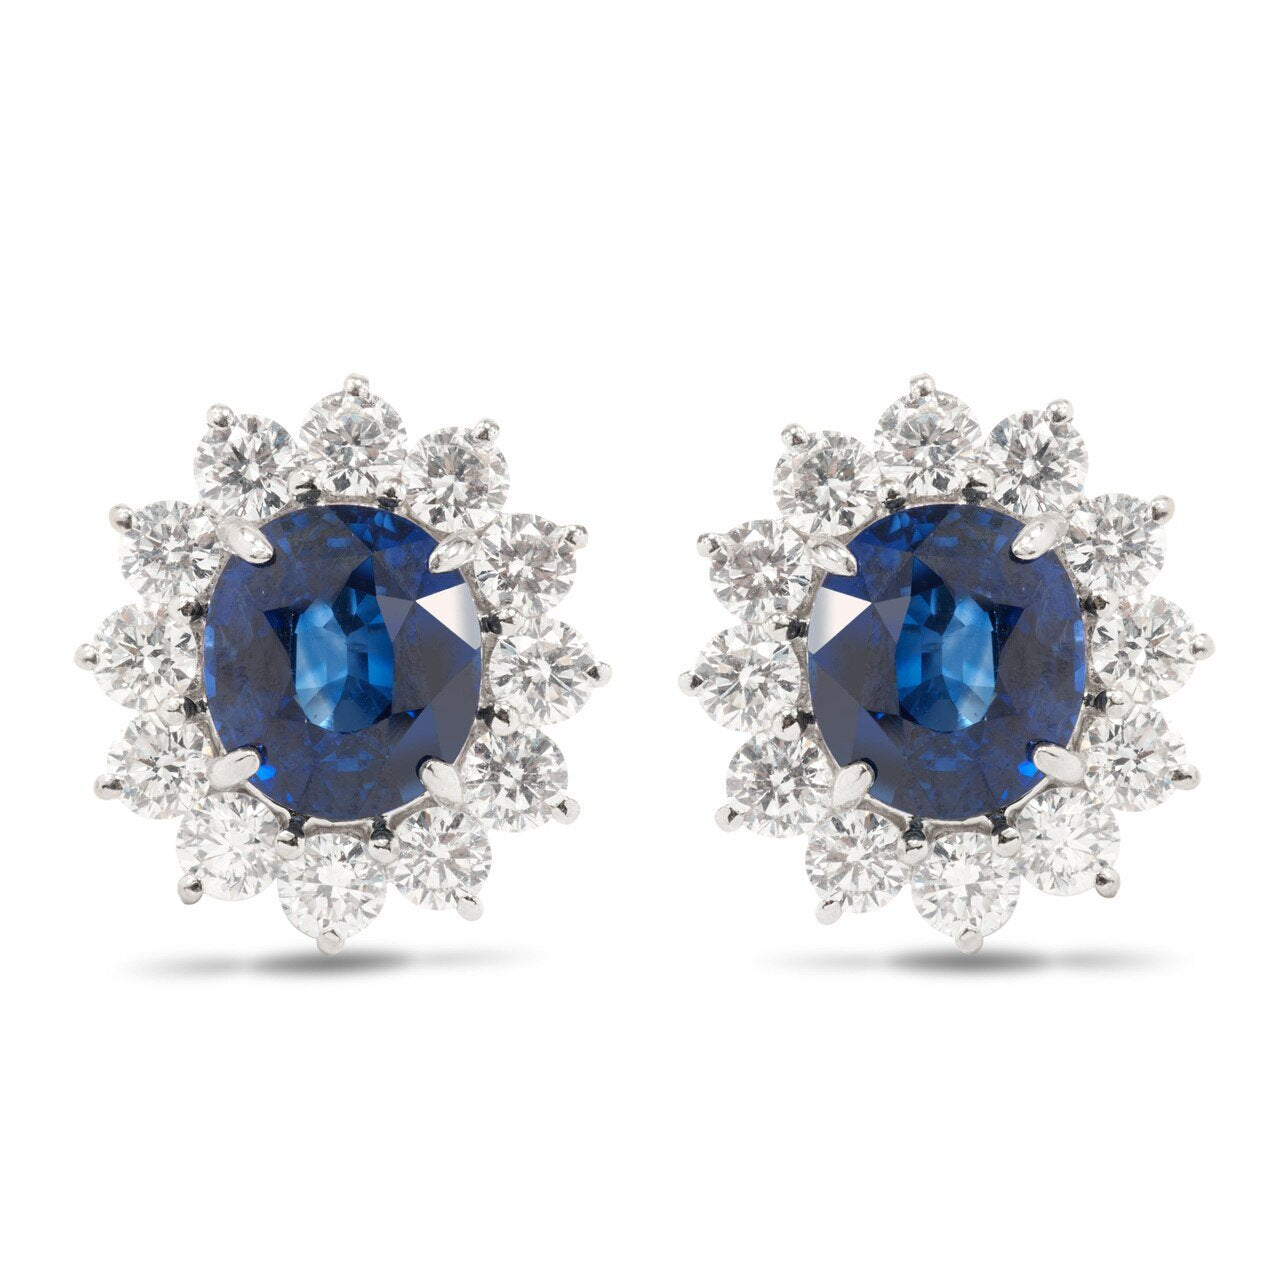 White Gold Oval Sapphire and Diamond Earrings